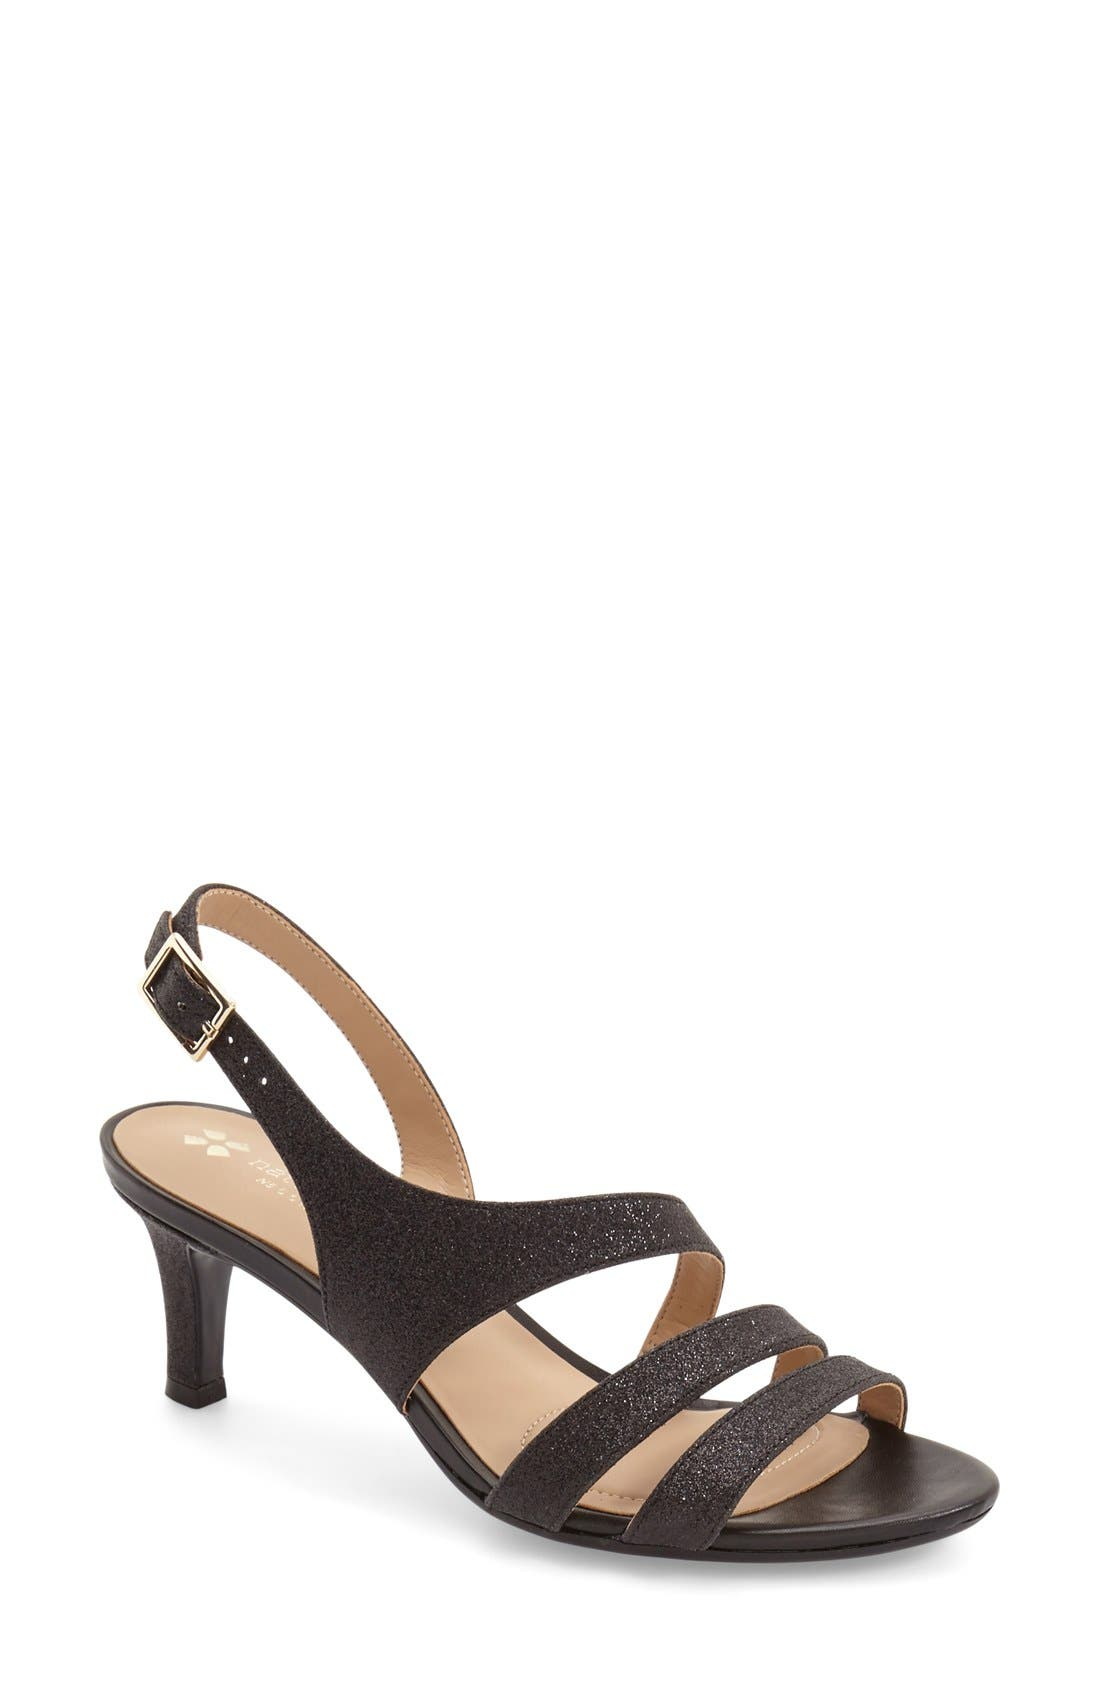 Taimi Sandal,                         Main,                         color, Black Glitter